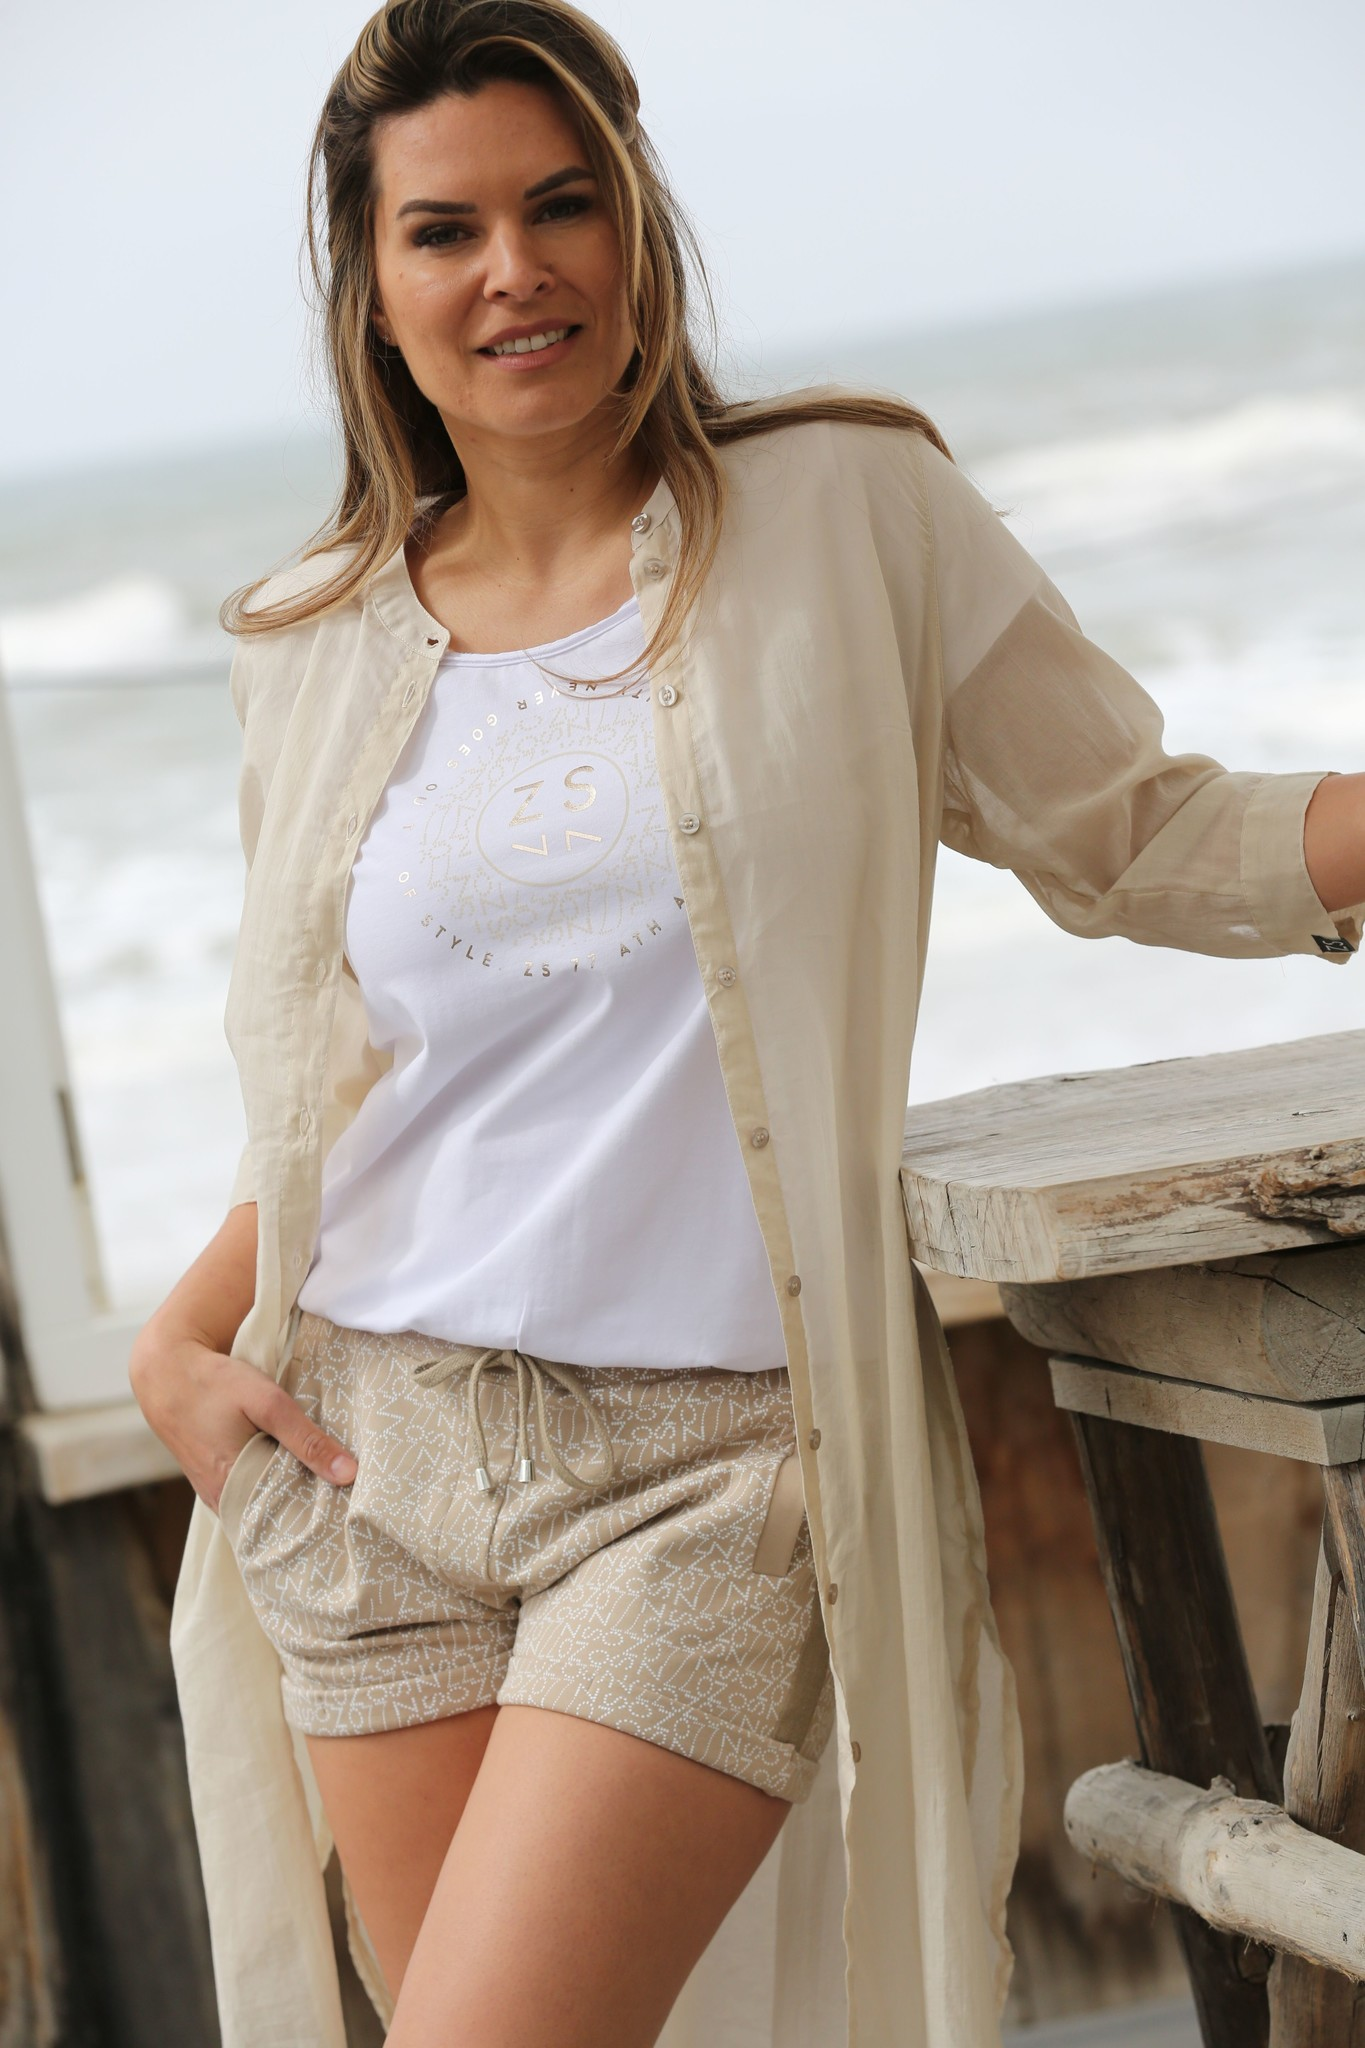 ZOSO ZOSO  214Cannes Luxury Voile Blouse 0007-Sand